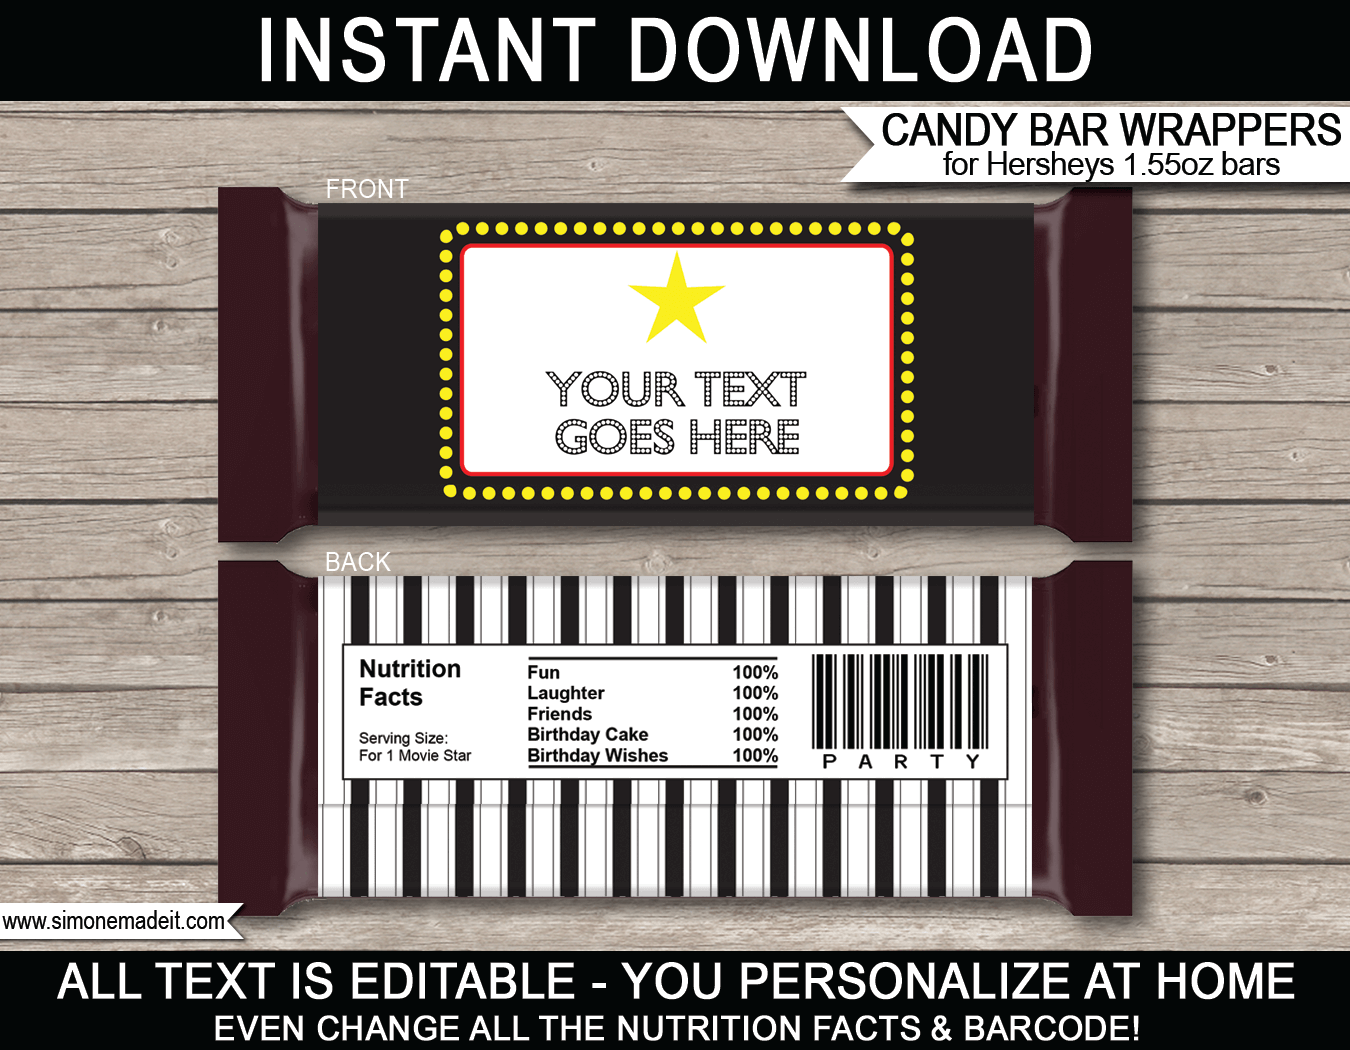 custom candy wrappers templates - movie hershey candy bar wrappers personalized candy bars